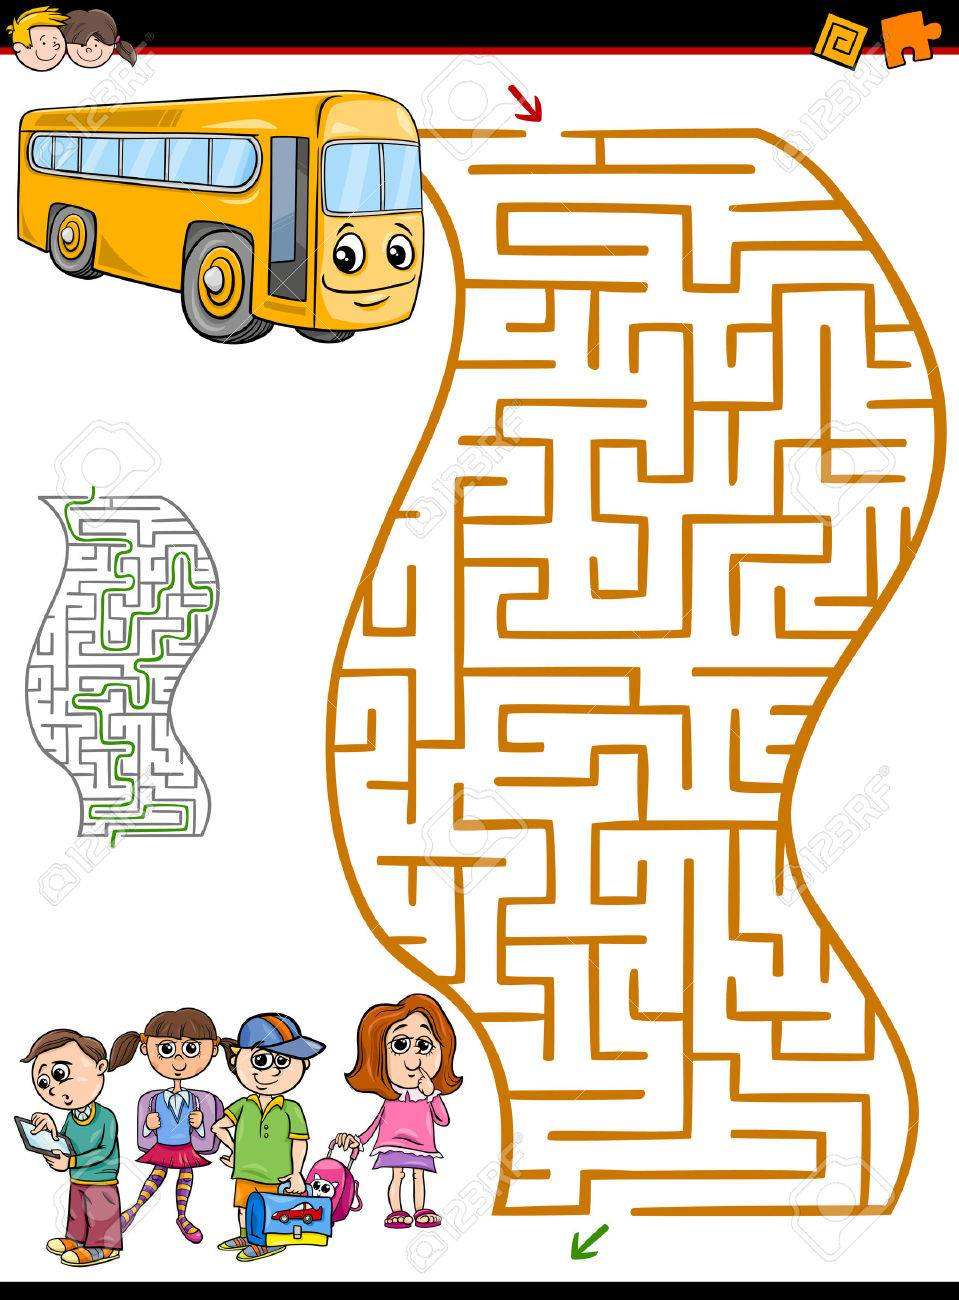 Cartoon Illustration of Education Maze or Labyrinth Activity Task for Preschool Children with School Bus and Kids - 58843391